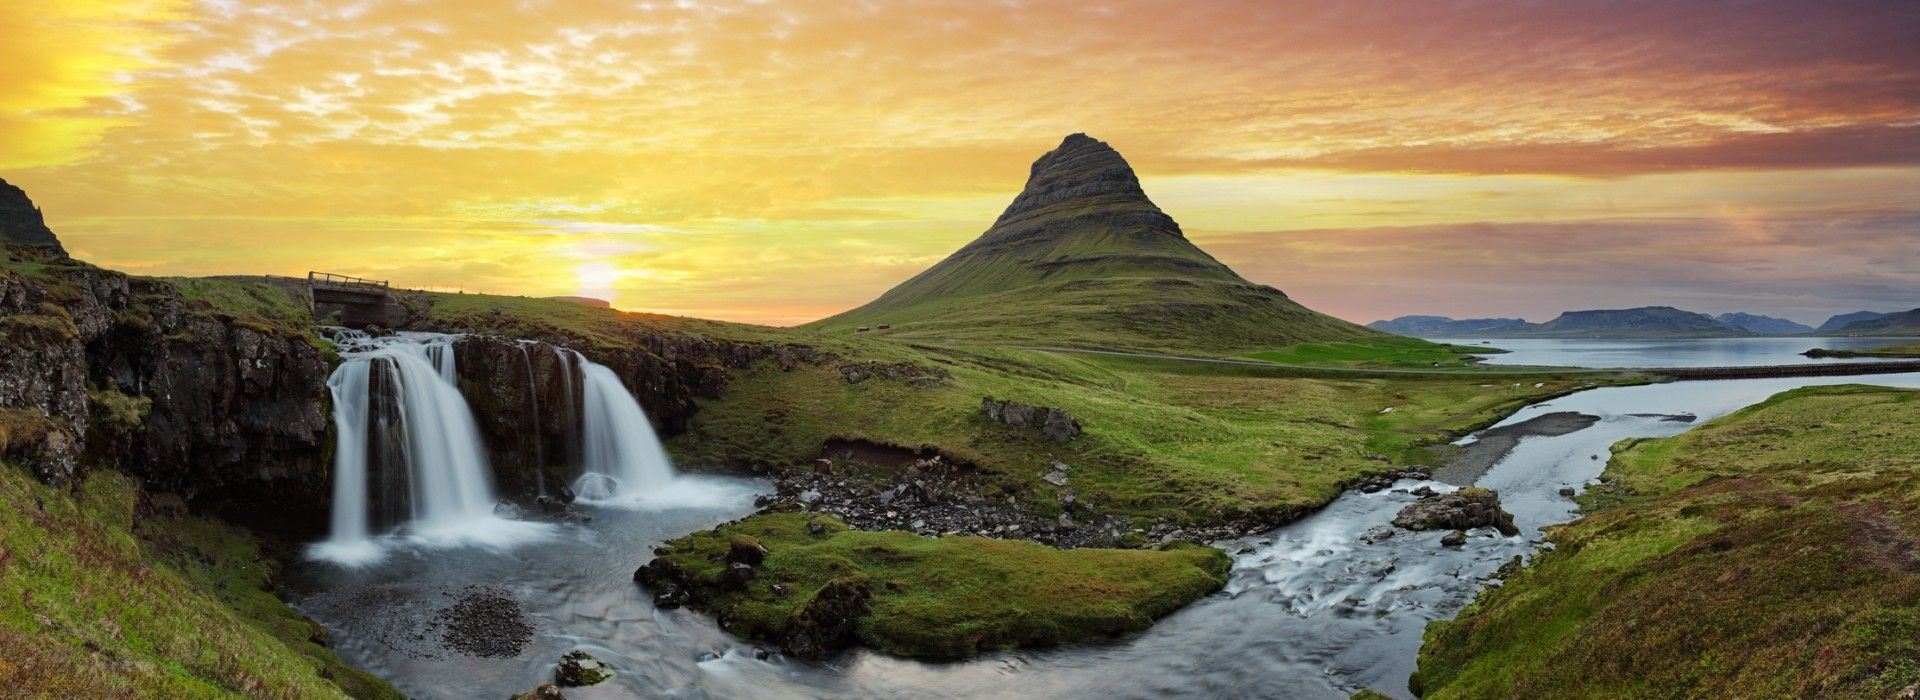 Special interests and hobbies Tours in Reykjavik